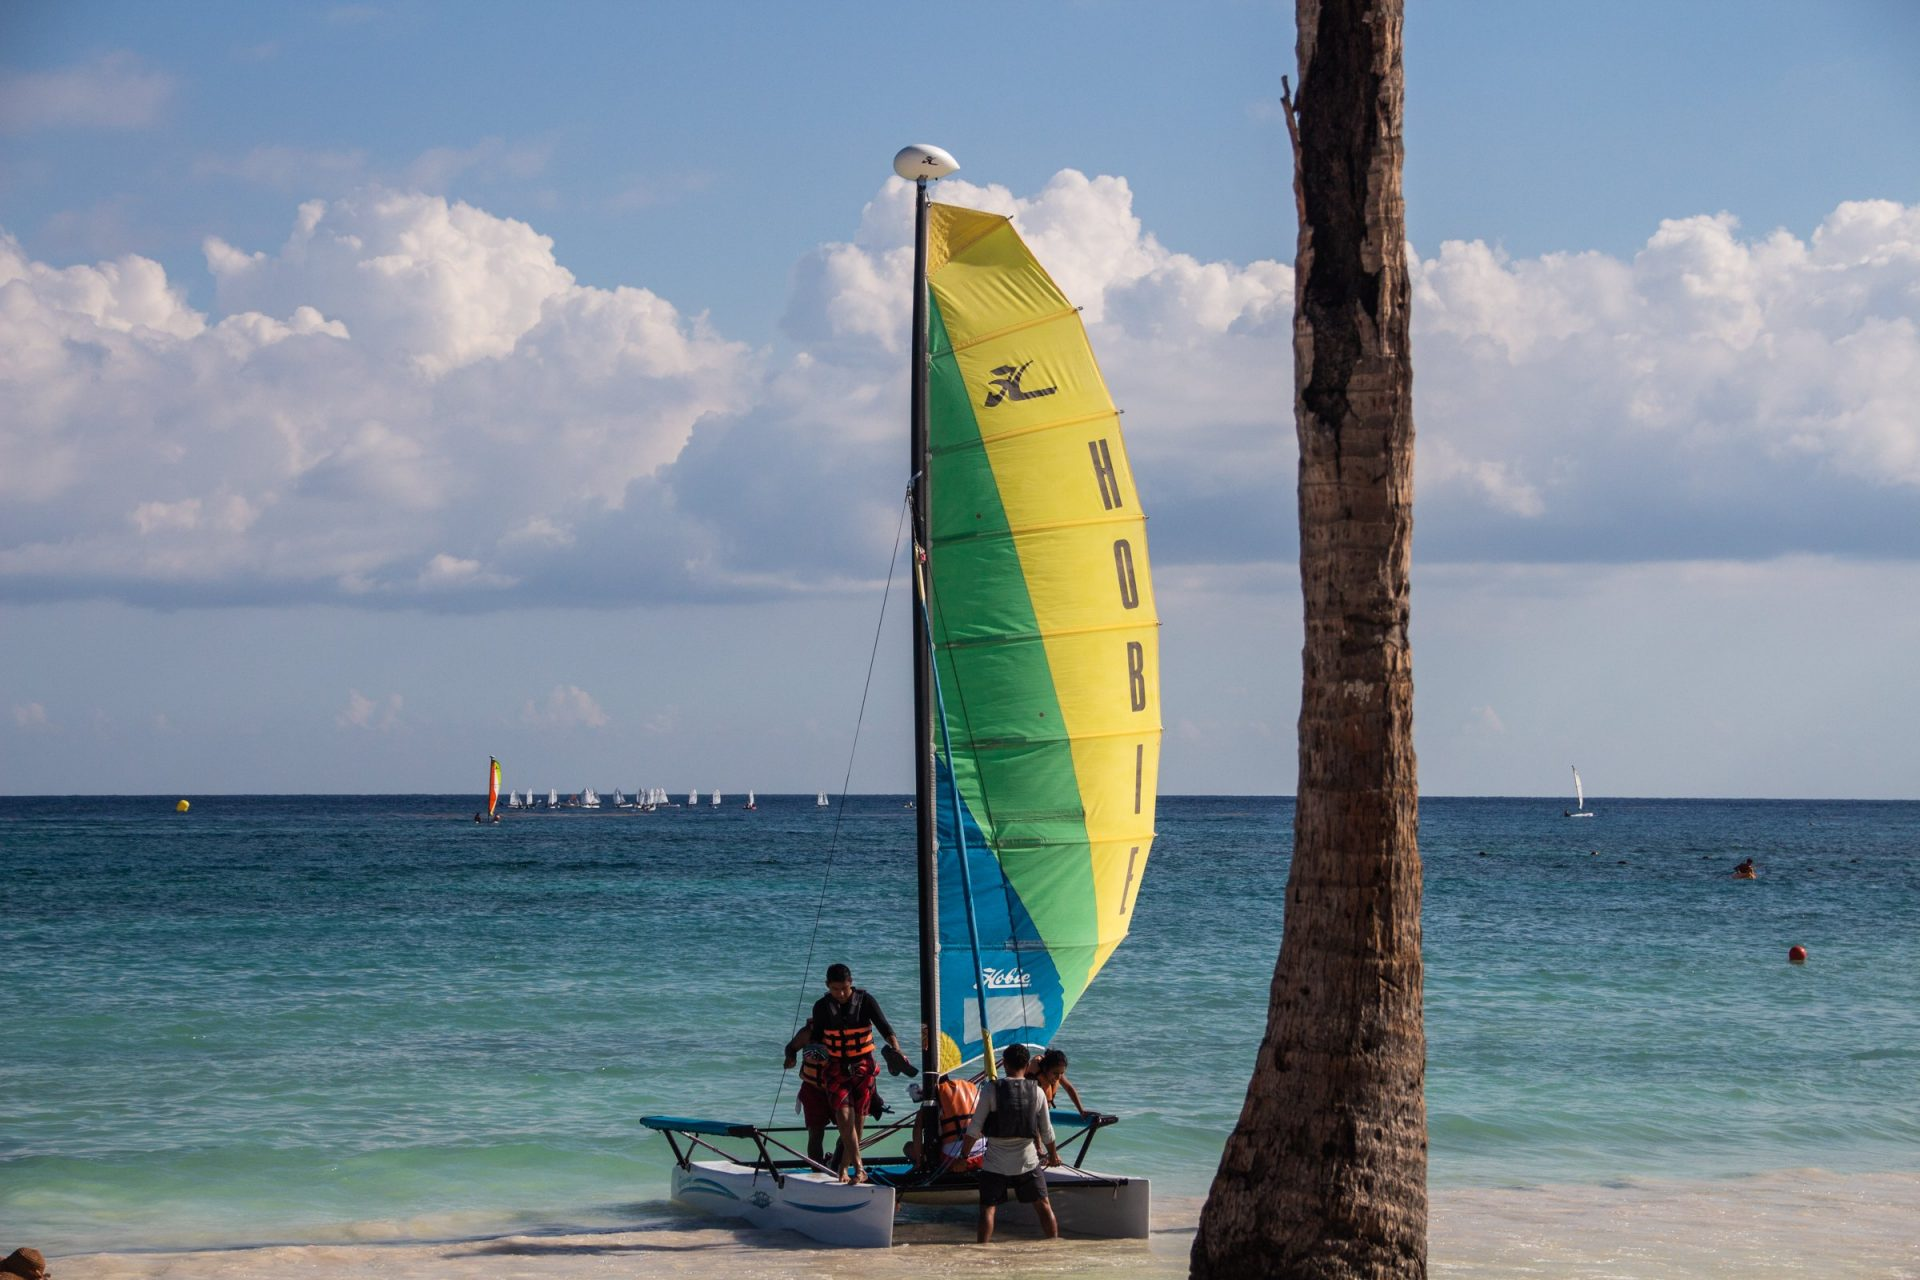 People On Catamaran Sailboat On Sandy Shore